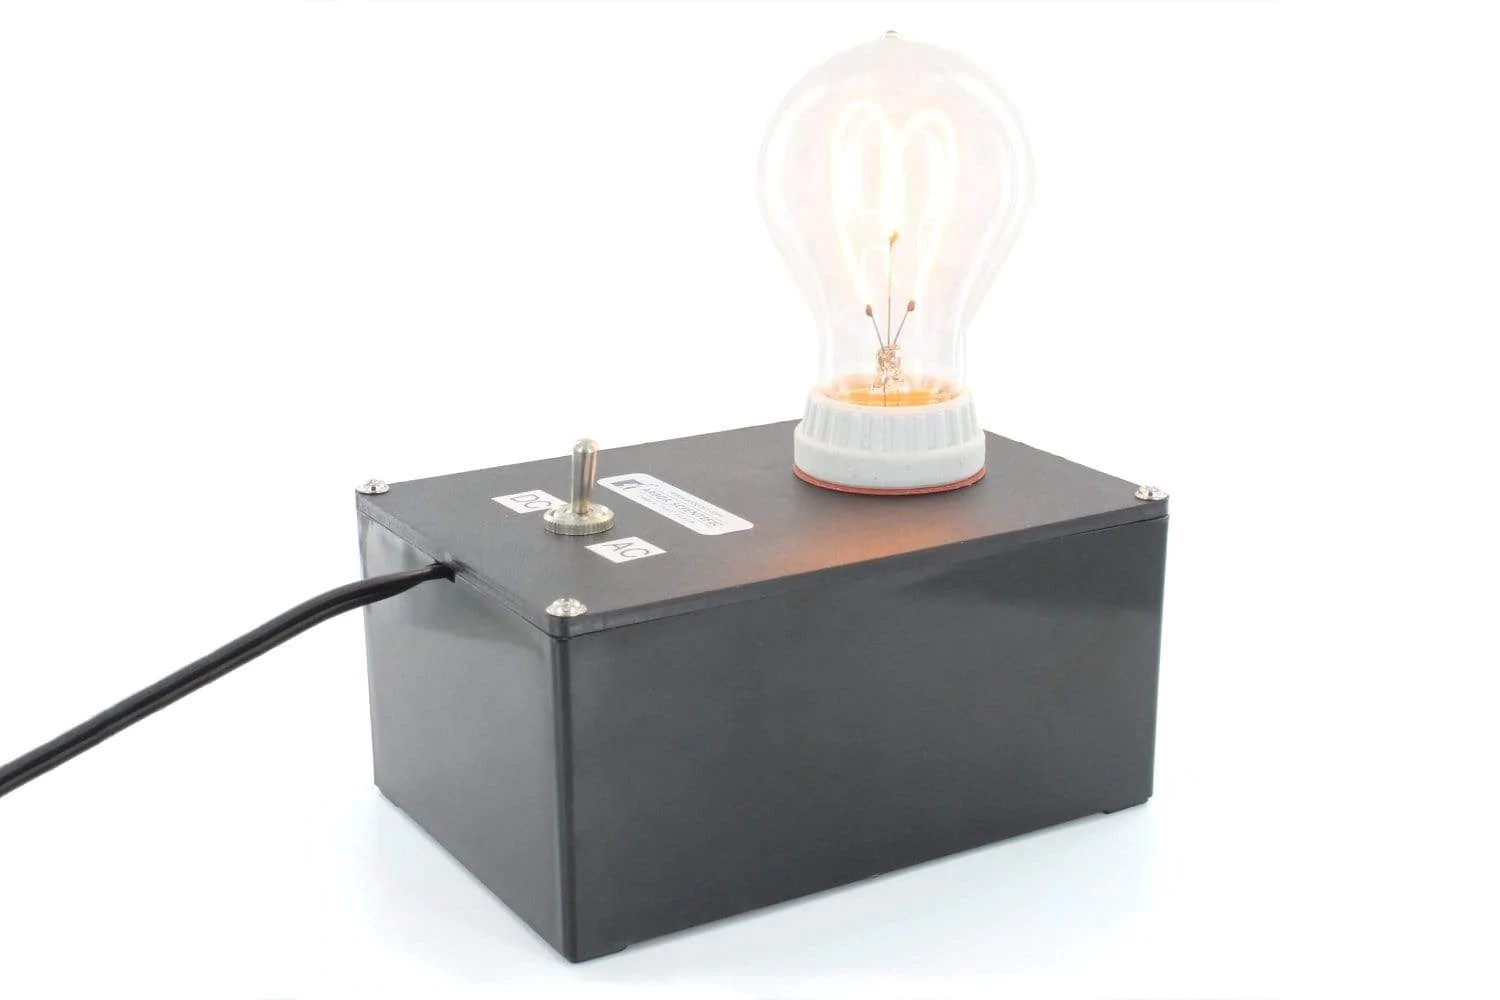 hight resolution of electricity magnetism light bulb demo